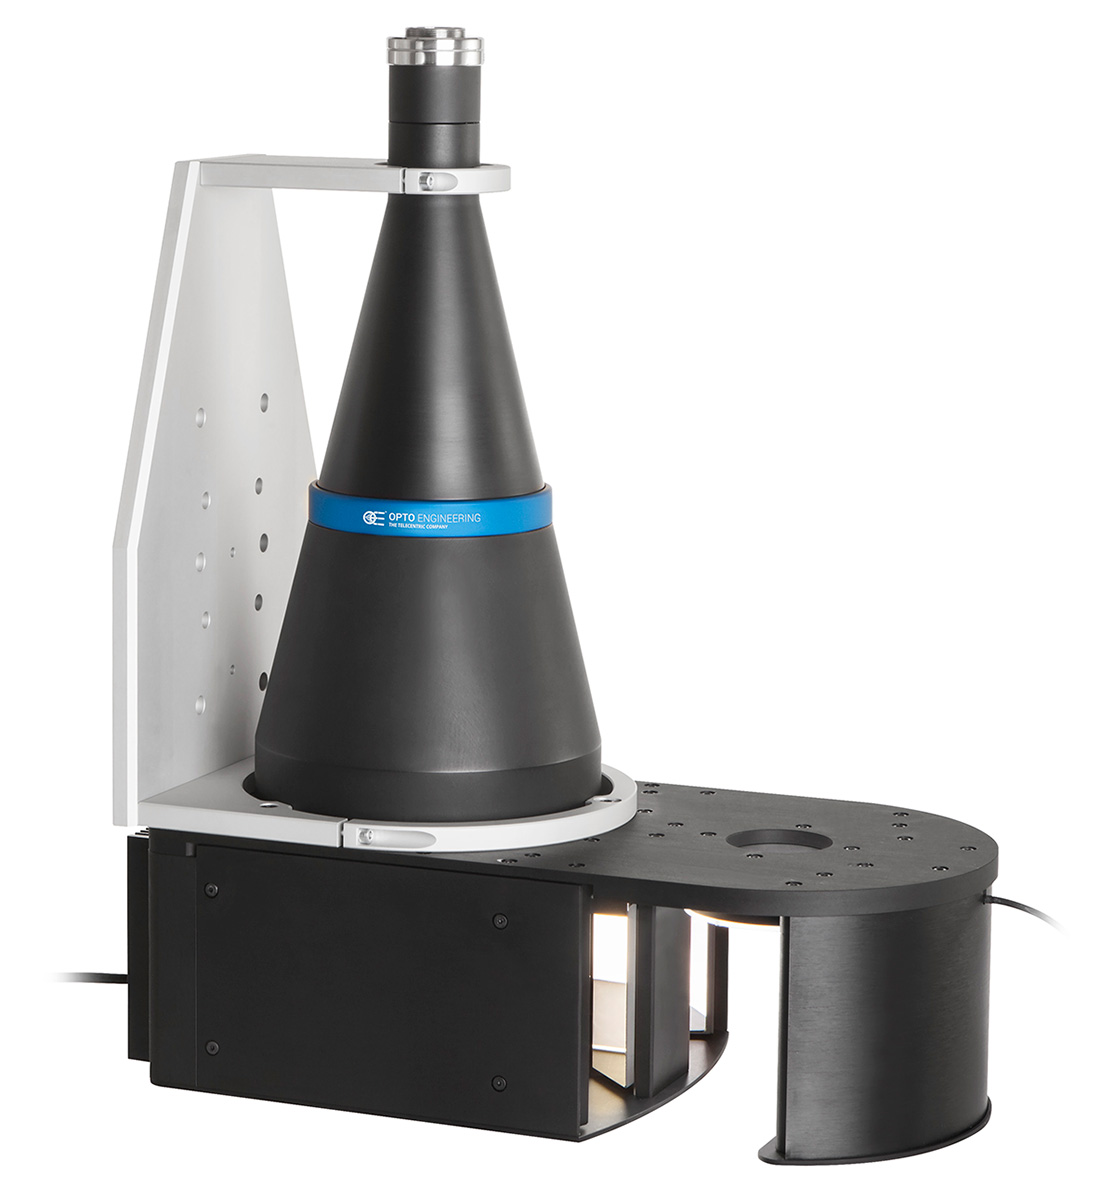 TCCAGE optical inspection system